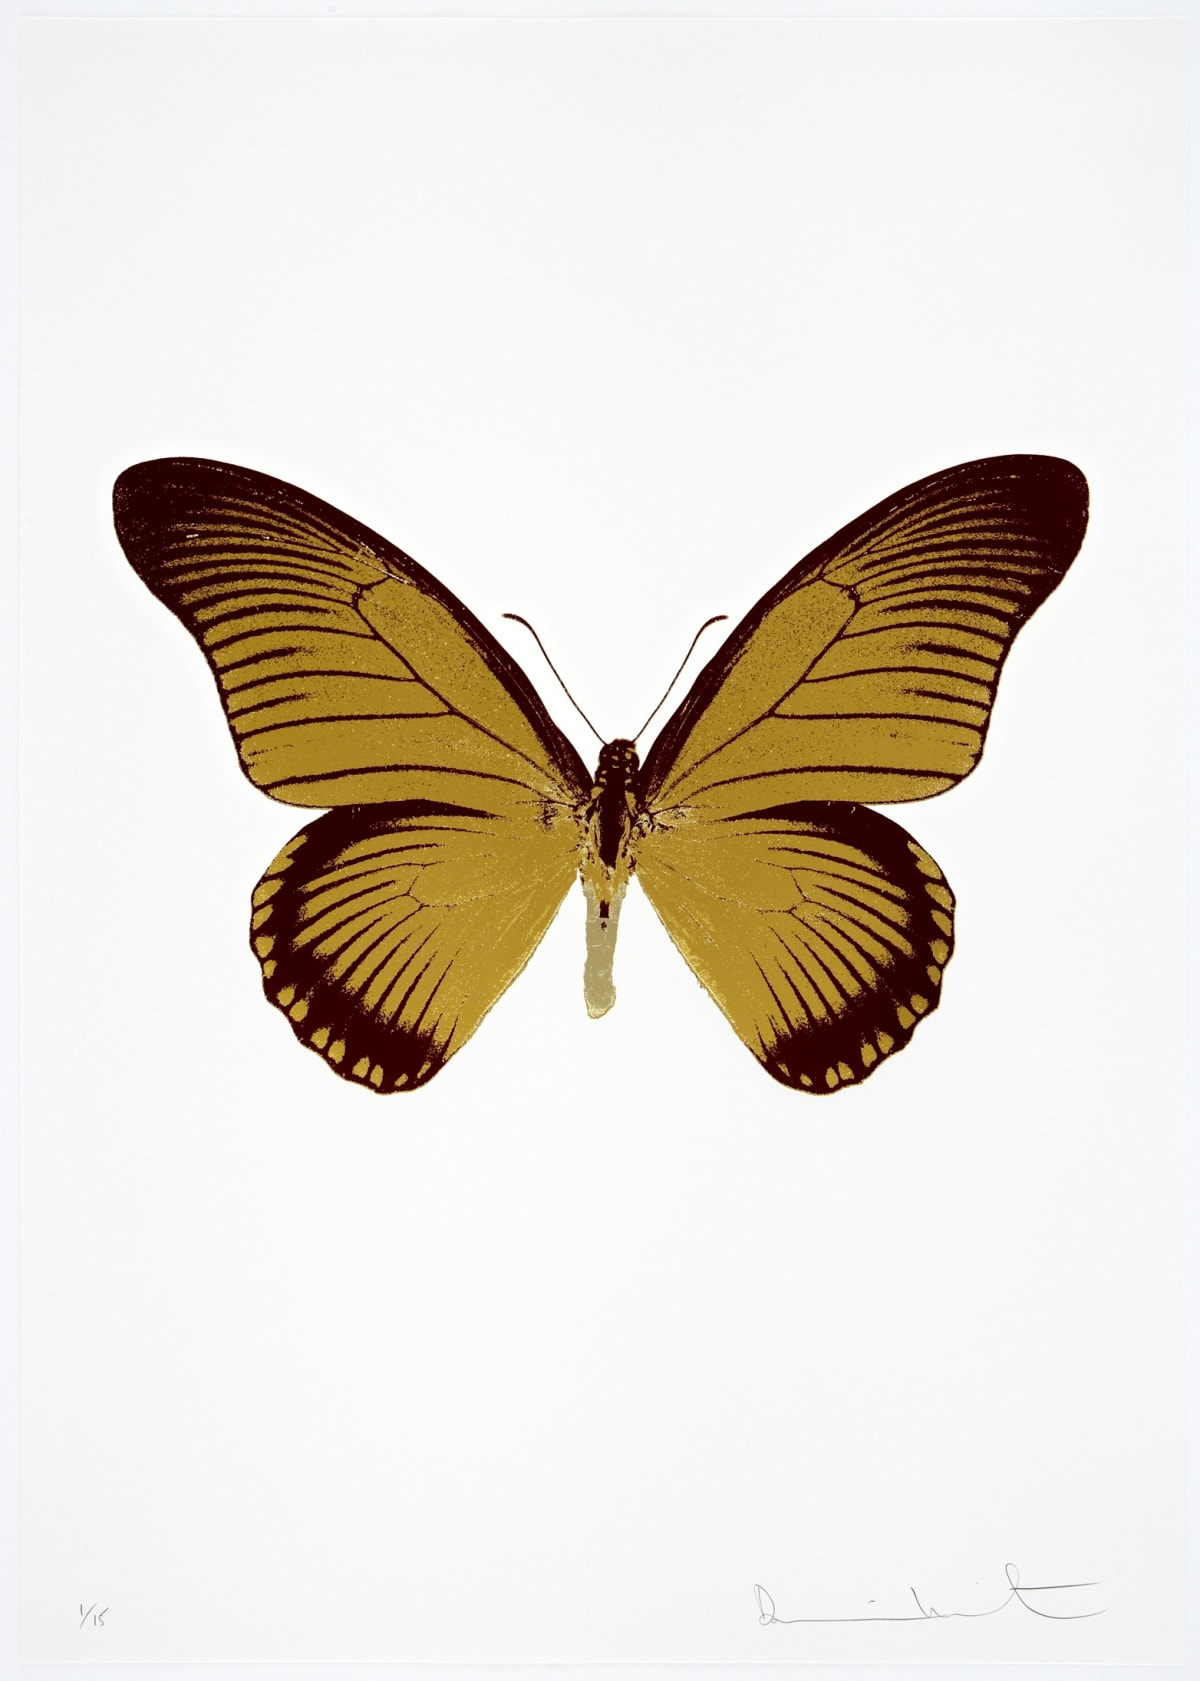 Damien Hirst The Souls IV - Oriental Gold/Burgundy/Cool Gold, 2010 3 colour foil block on 300gsm Arches 88 archival paper. Signed and numbered. Published by Paul Stolper and Other Criteria 72 x 51cm OC8036 / 1418-59 Edition of 15